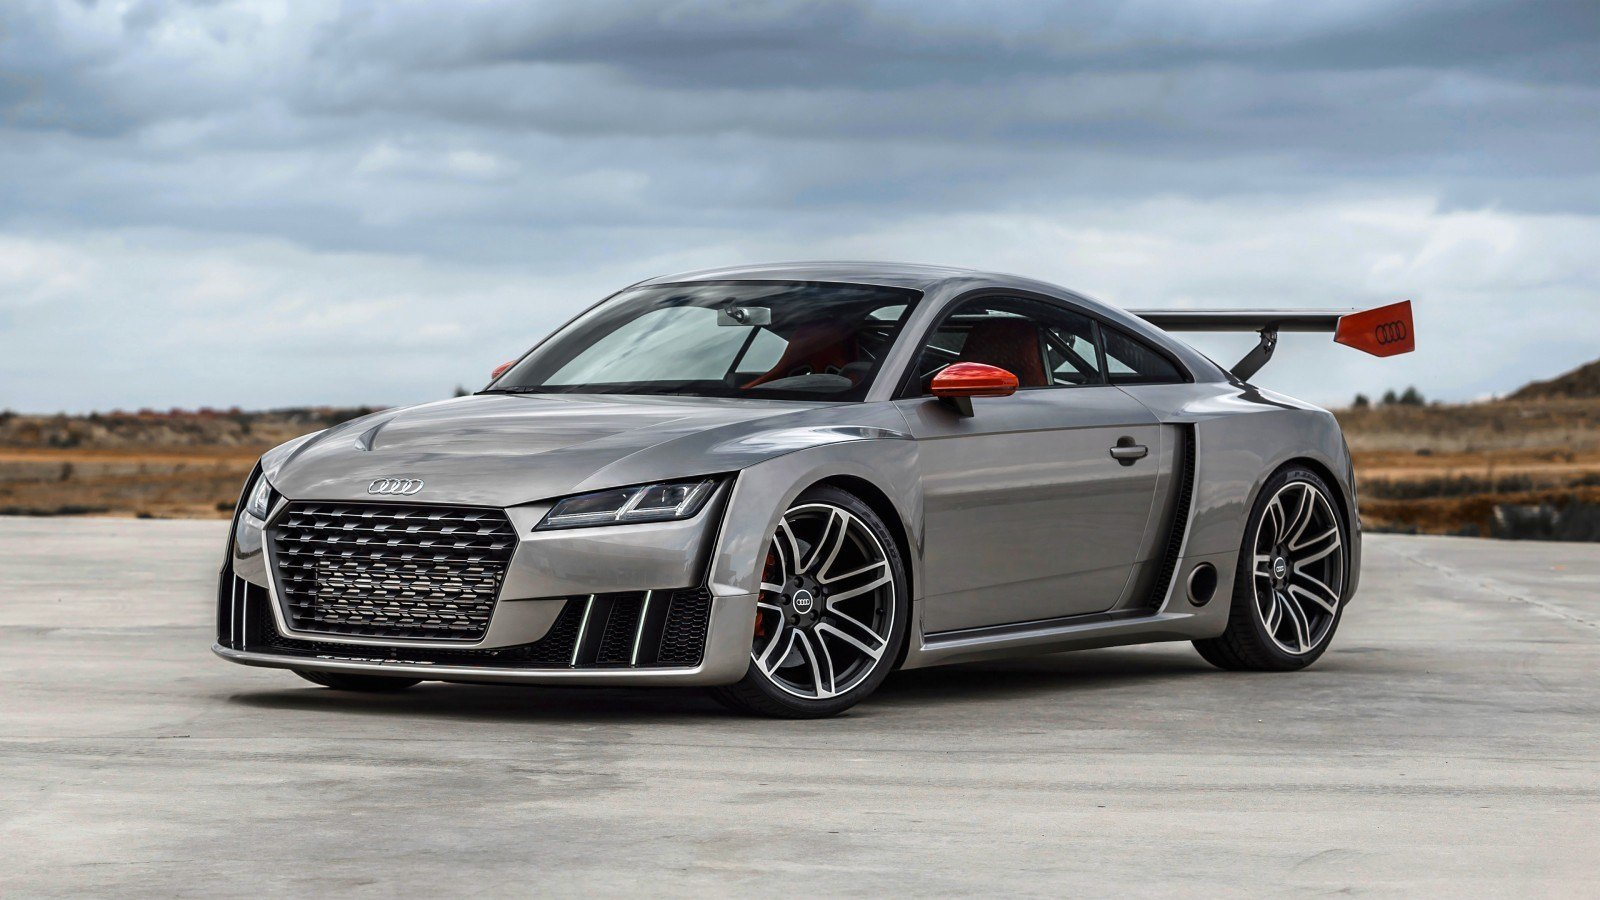 Latest 2016 Audi Tt Coupe Concept Wallpaper Hd Car Wallpapers Free Download